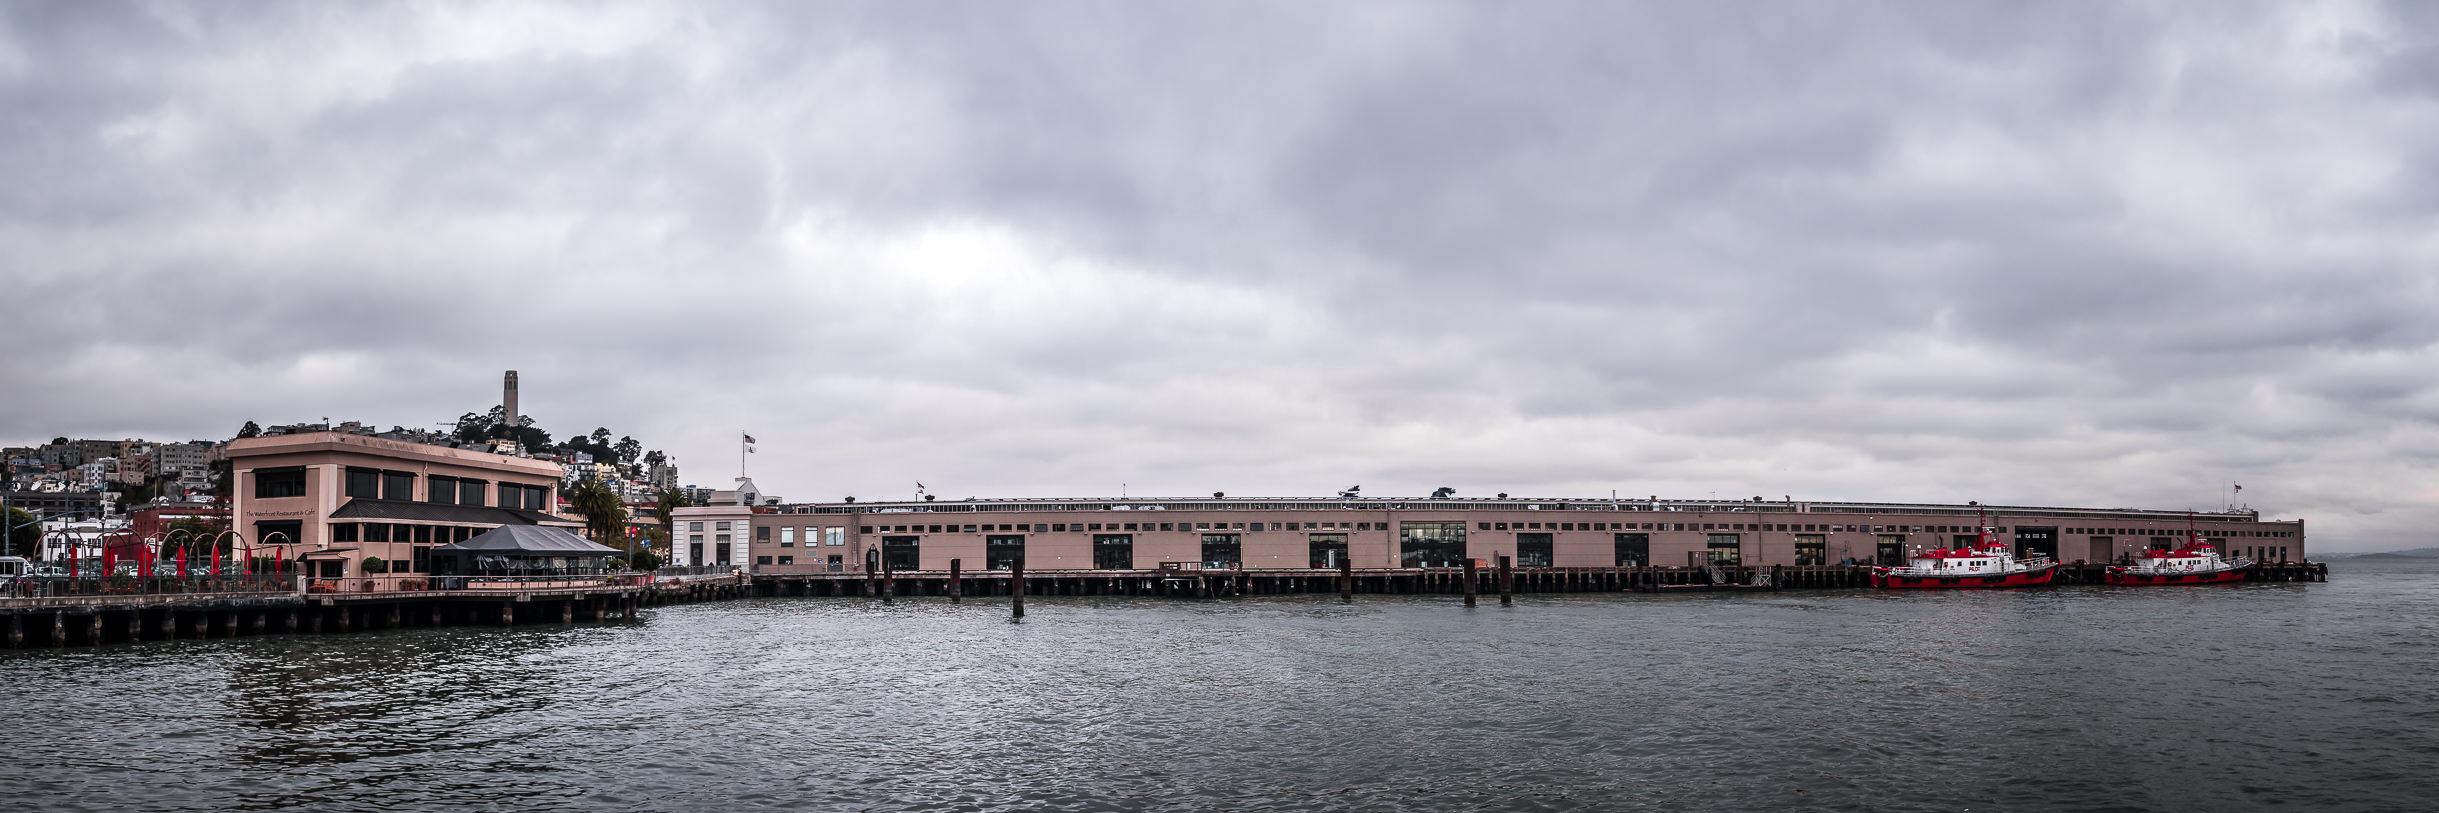 San Francisco's Pier 9 reaches out into the cloud-covered waters of the city's namesake bay.